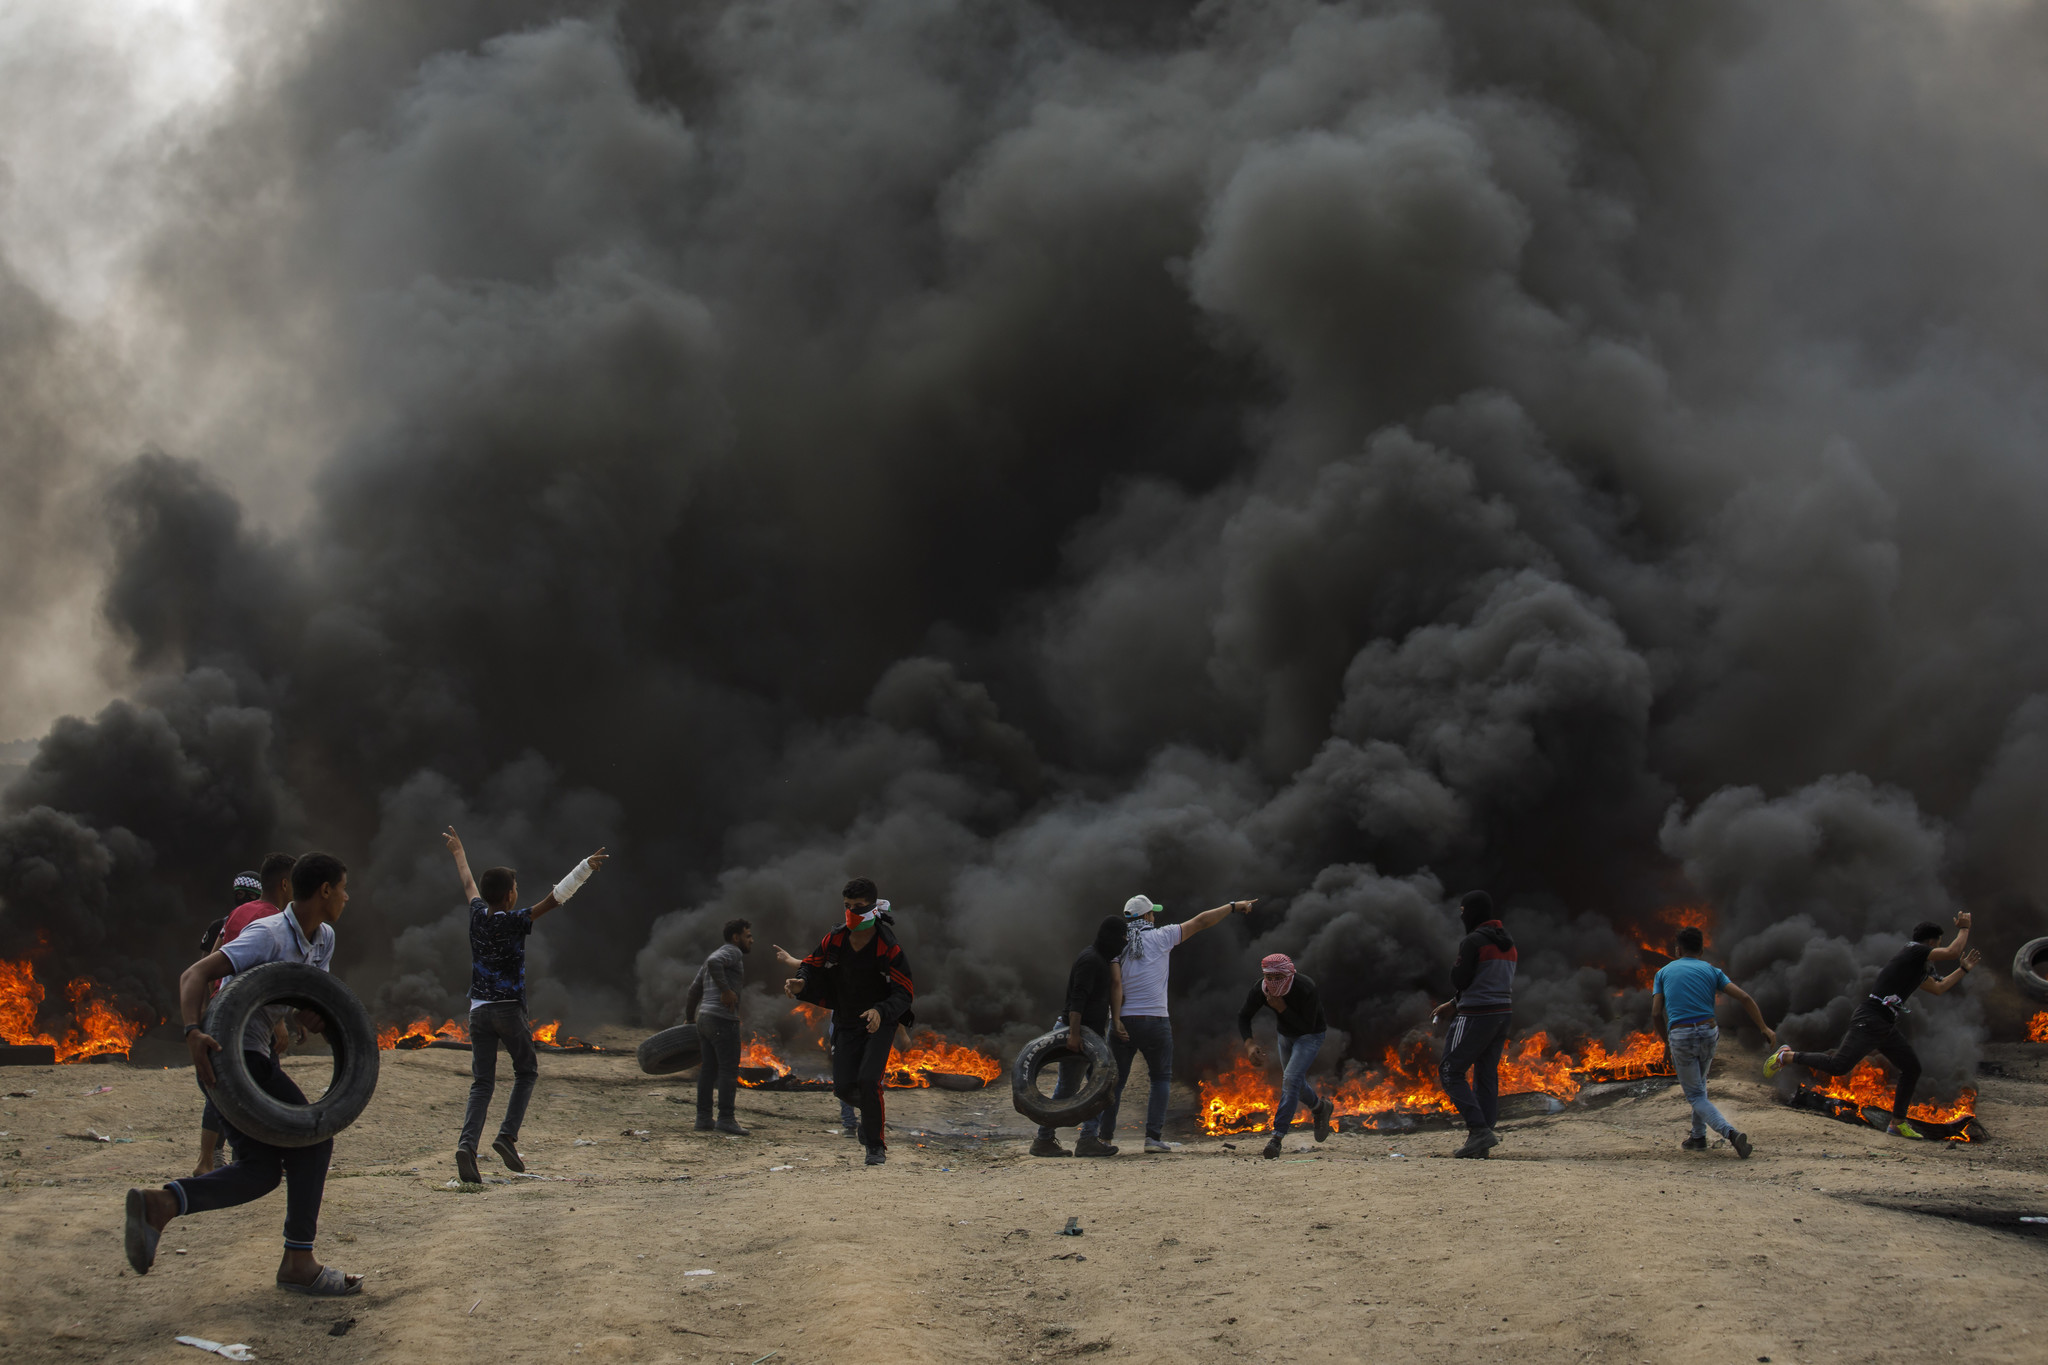 GAZA CITY, GAZA — MONDAY, MAY 14, 2018: Palestinians burn tires to create a smoke column meant to r